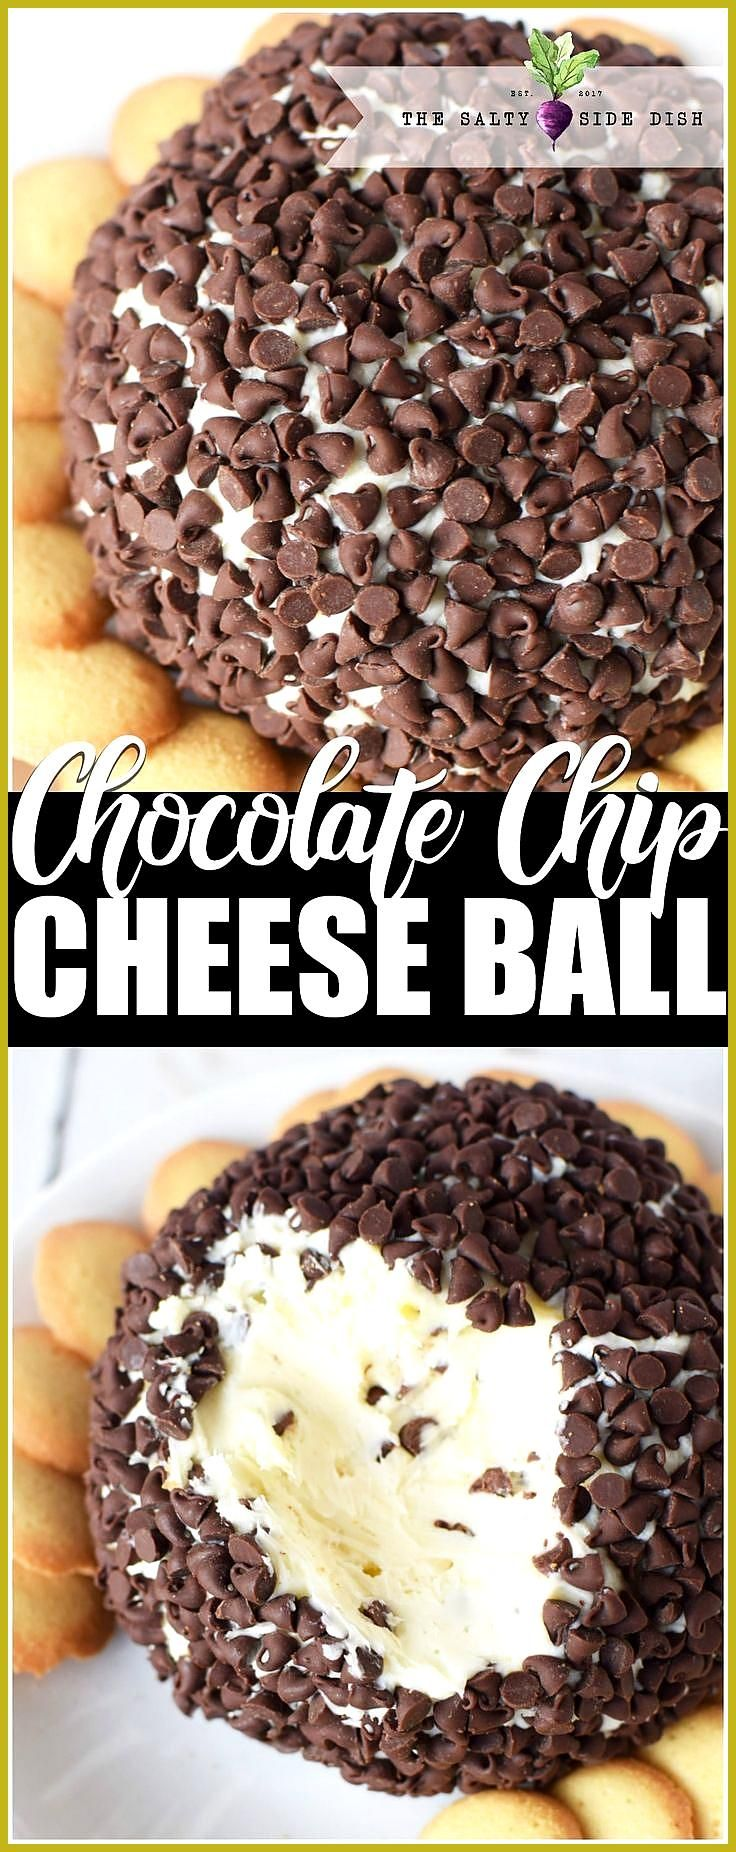 Chocolate Chip Cheese Ball Recipe an easy holiday appetizer that is so delicious and creamy appetiz